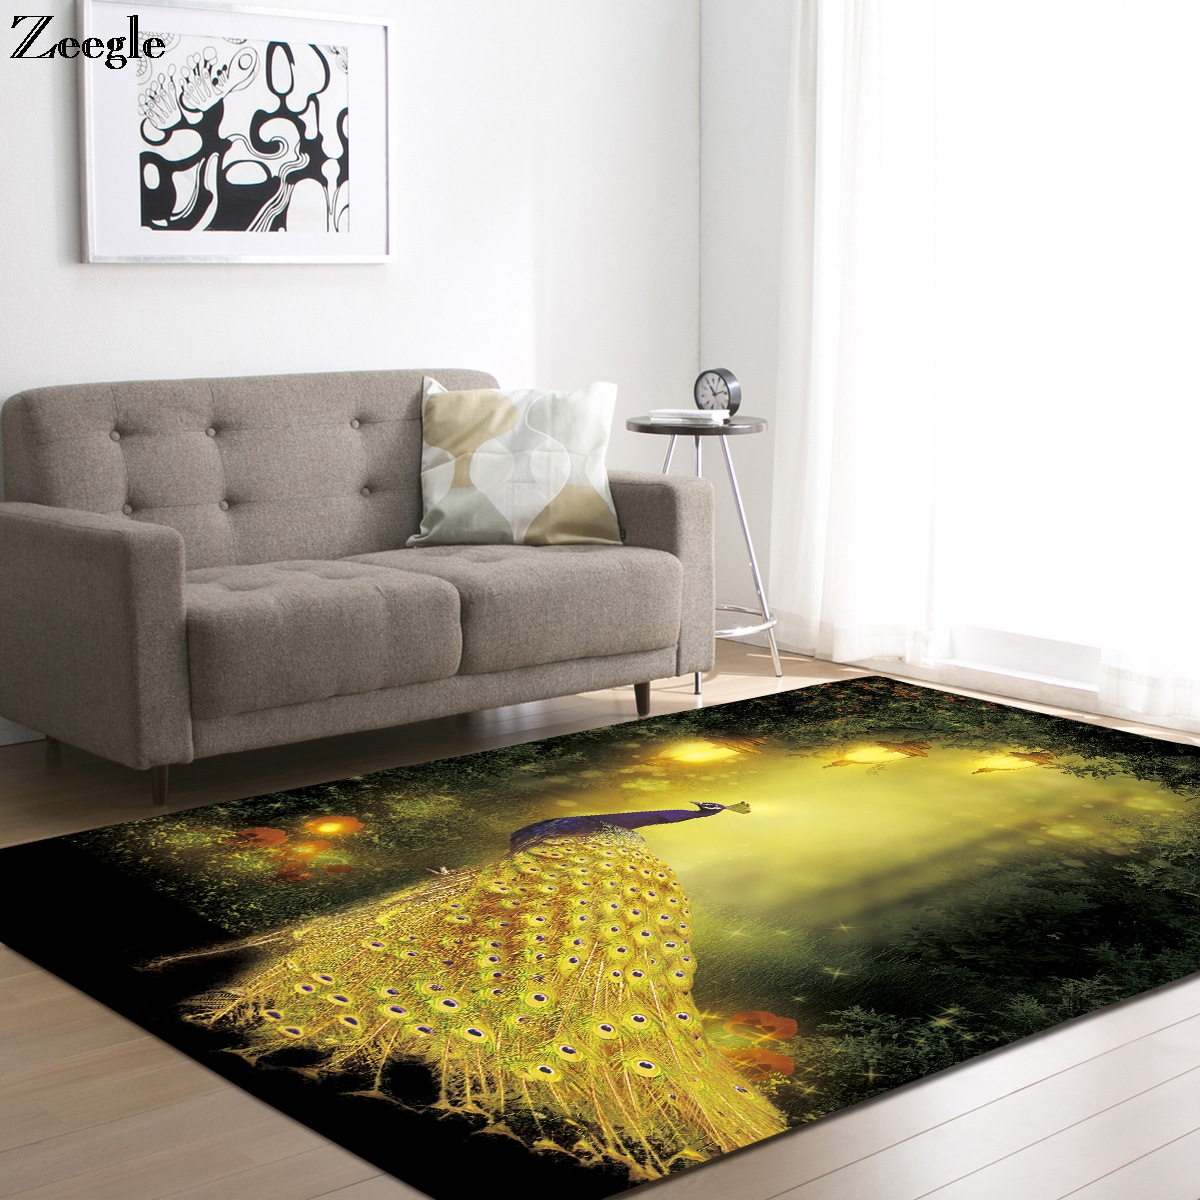 Washable Area Rugs Living Room: Aliexpress.com : Buy Zeegle Peacock Printed Large Size